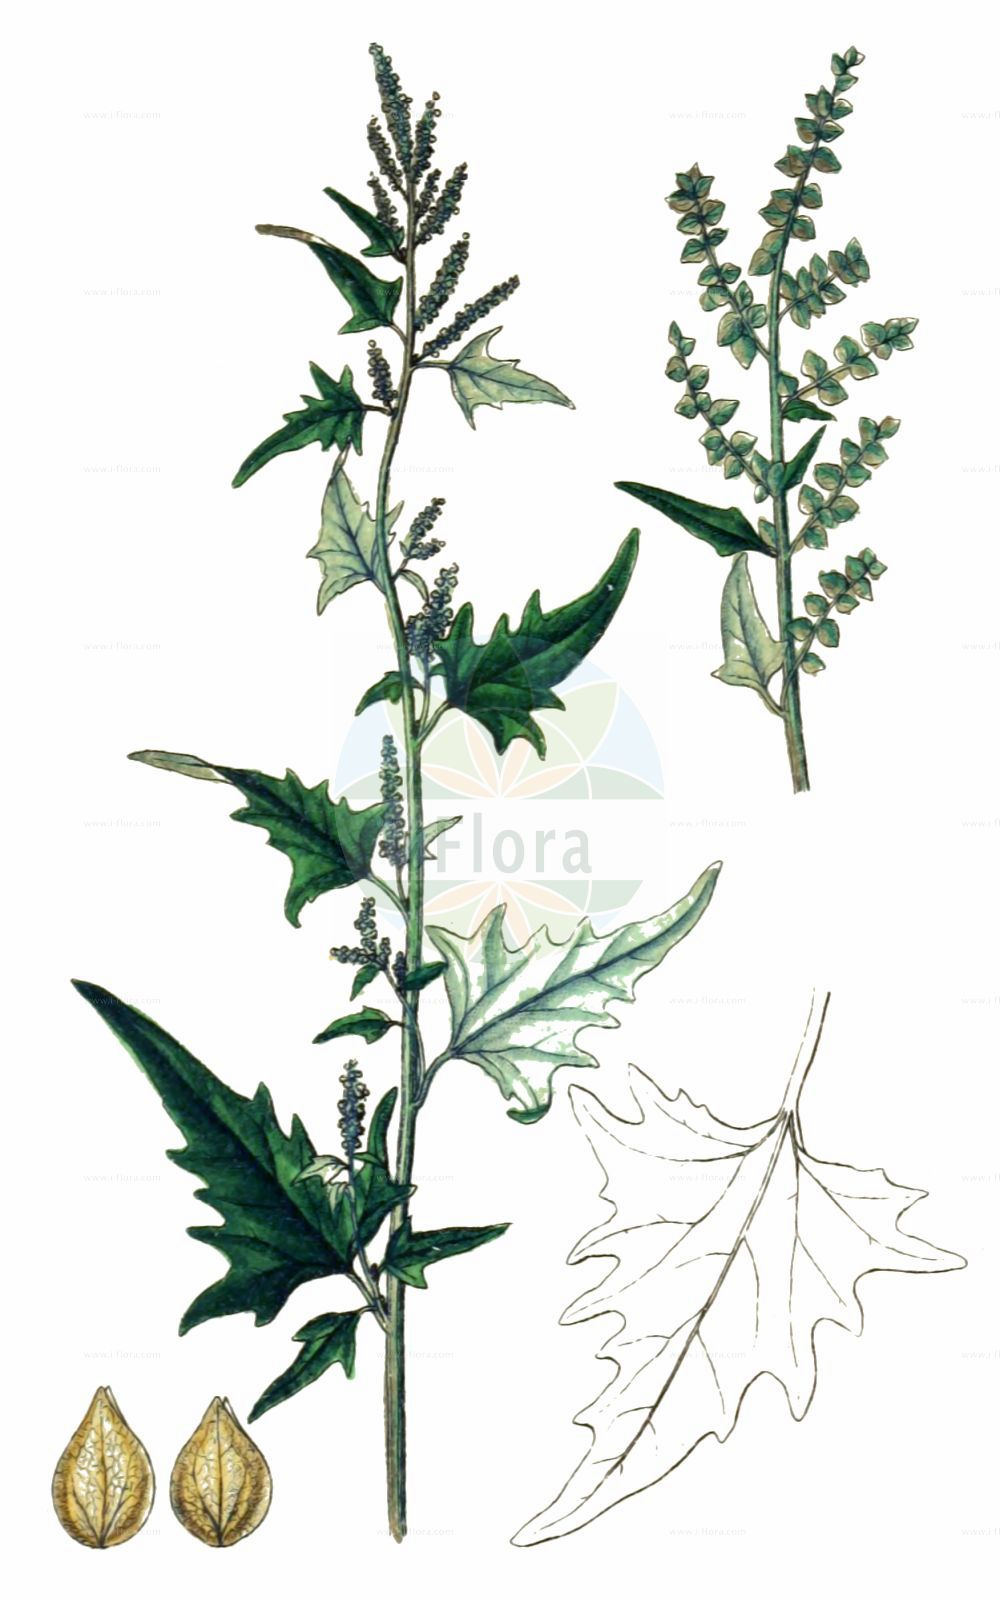 Historische Abbildung von Atriplex sagittata (Glanz-Melde - Purple Orache). Das Bild zeigt Blatt, Bluete, Frucht und Same. ---- Historical Drawing of Atriplex sagittata (Glanz-Melde - Purple Orache).The image is showing leaf, flower, fruit and seed.(Atriplex sagittata,Glanz-Melde,Purple Orache,Atriplex acuminata,Atriplex nitens,Atriplex sagittata,Glanz-Melde,Purple Orache,Atriplex,Melde,Saltbush,Amaranthaceae,Fuchsschwanzgewaechse,Pigweed family,Blatt,Bluete,Frucht,Same,leaf,flower,fruit,seed,Sturm (1796f))